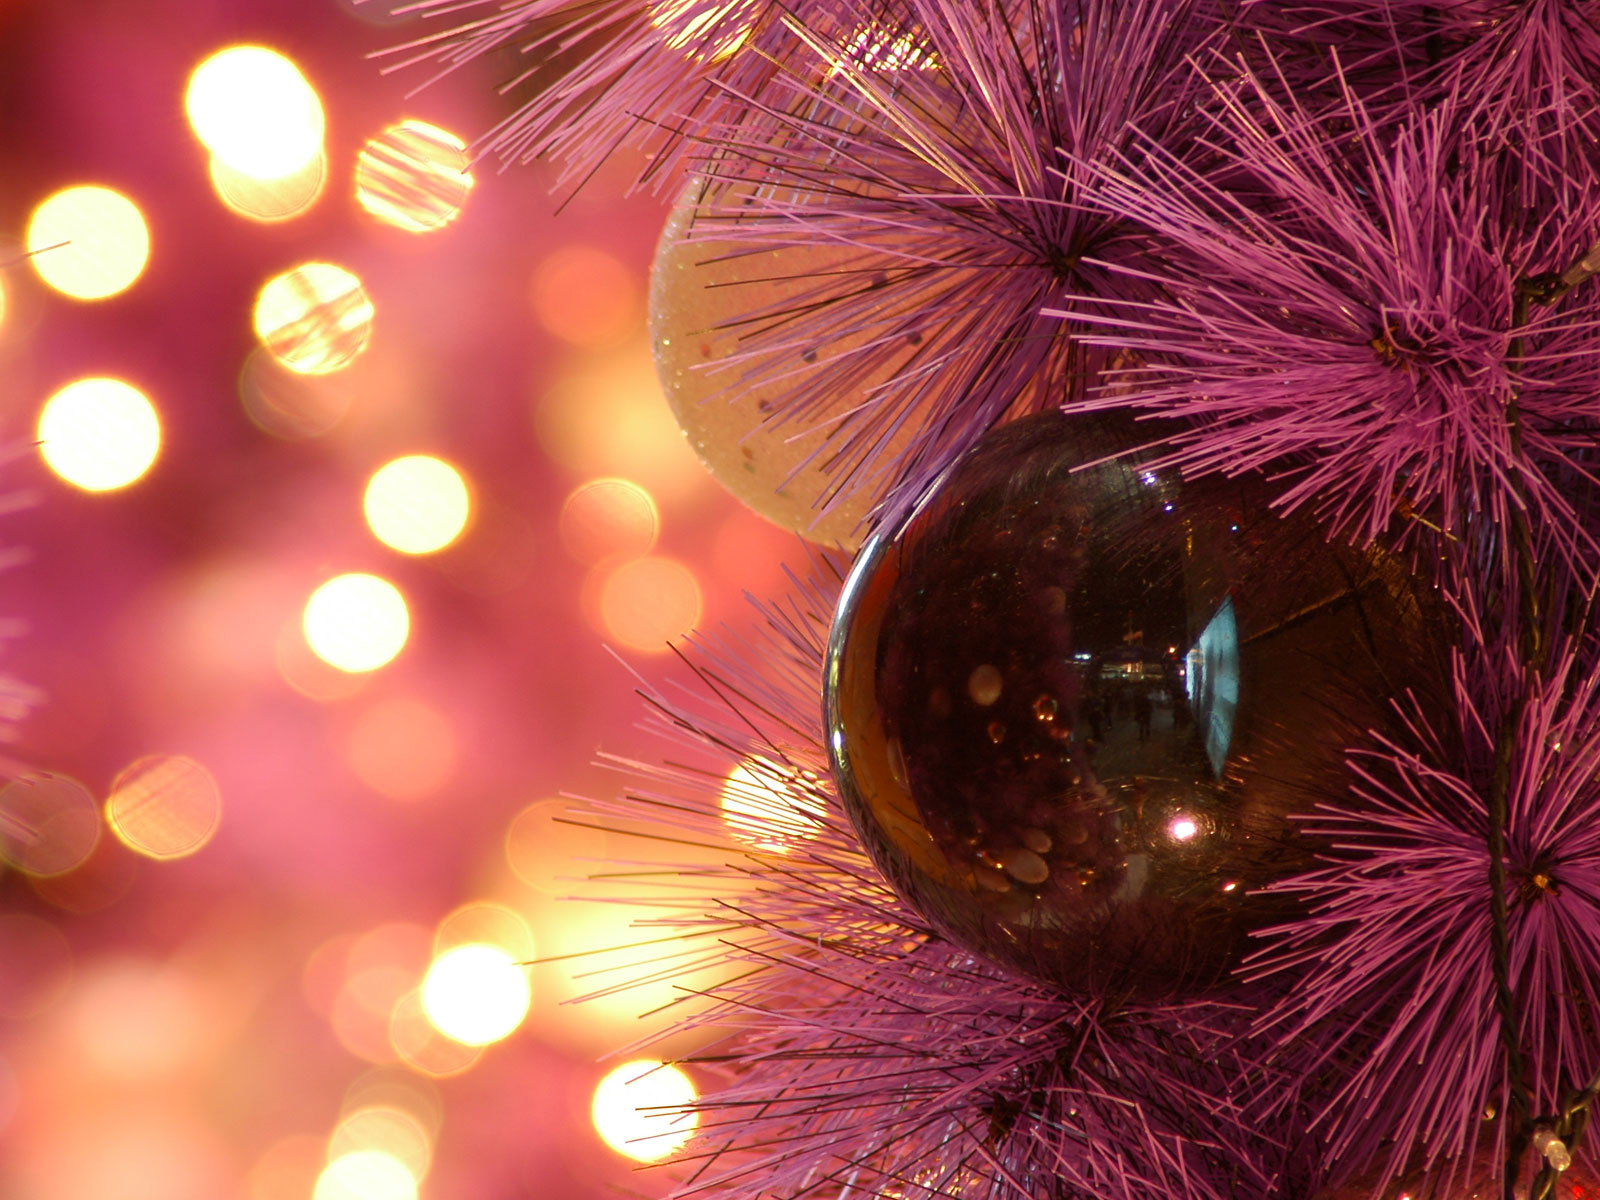 Hair stylist christmas ornaments - As Long As I Can Remember The Holiday Season Has Been Tough On Hair Stylists And Salon S Clients It Seems Like There Are Always A Few Tears From Clients